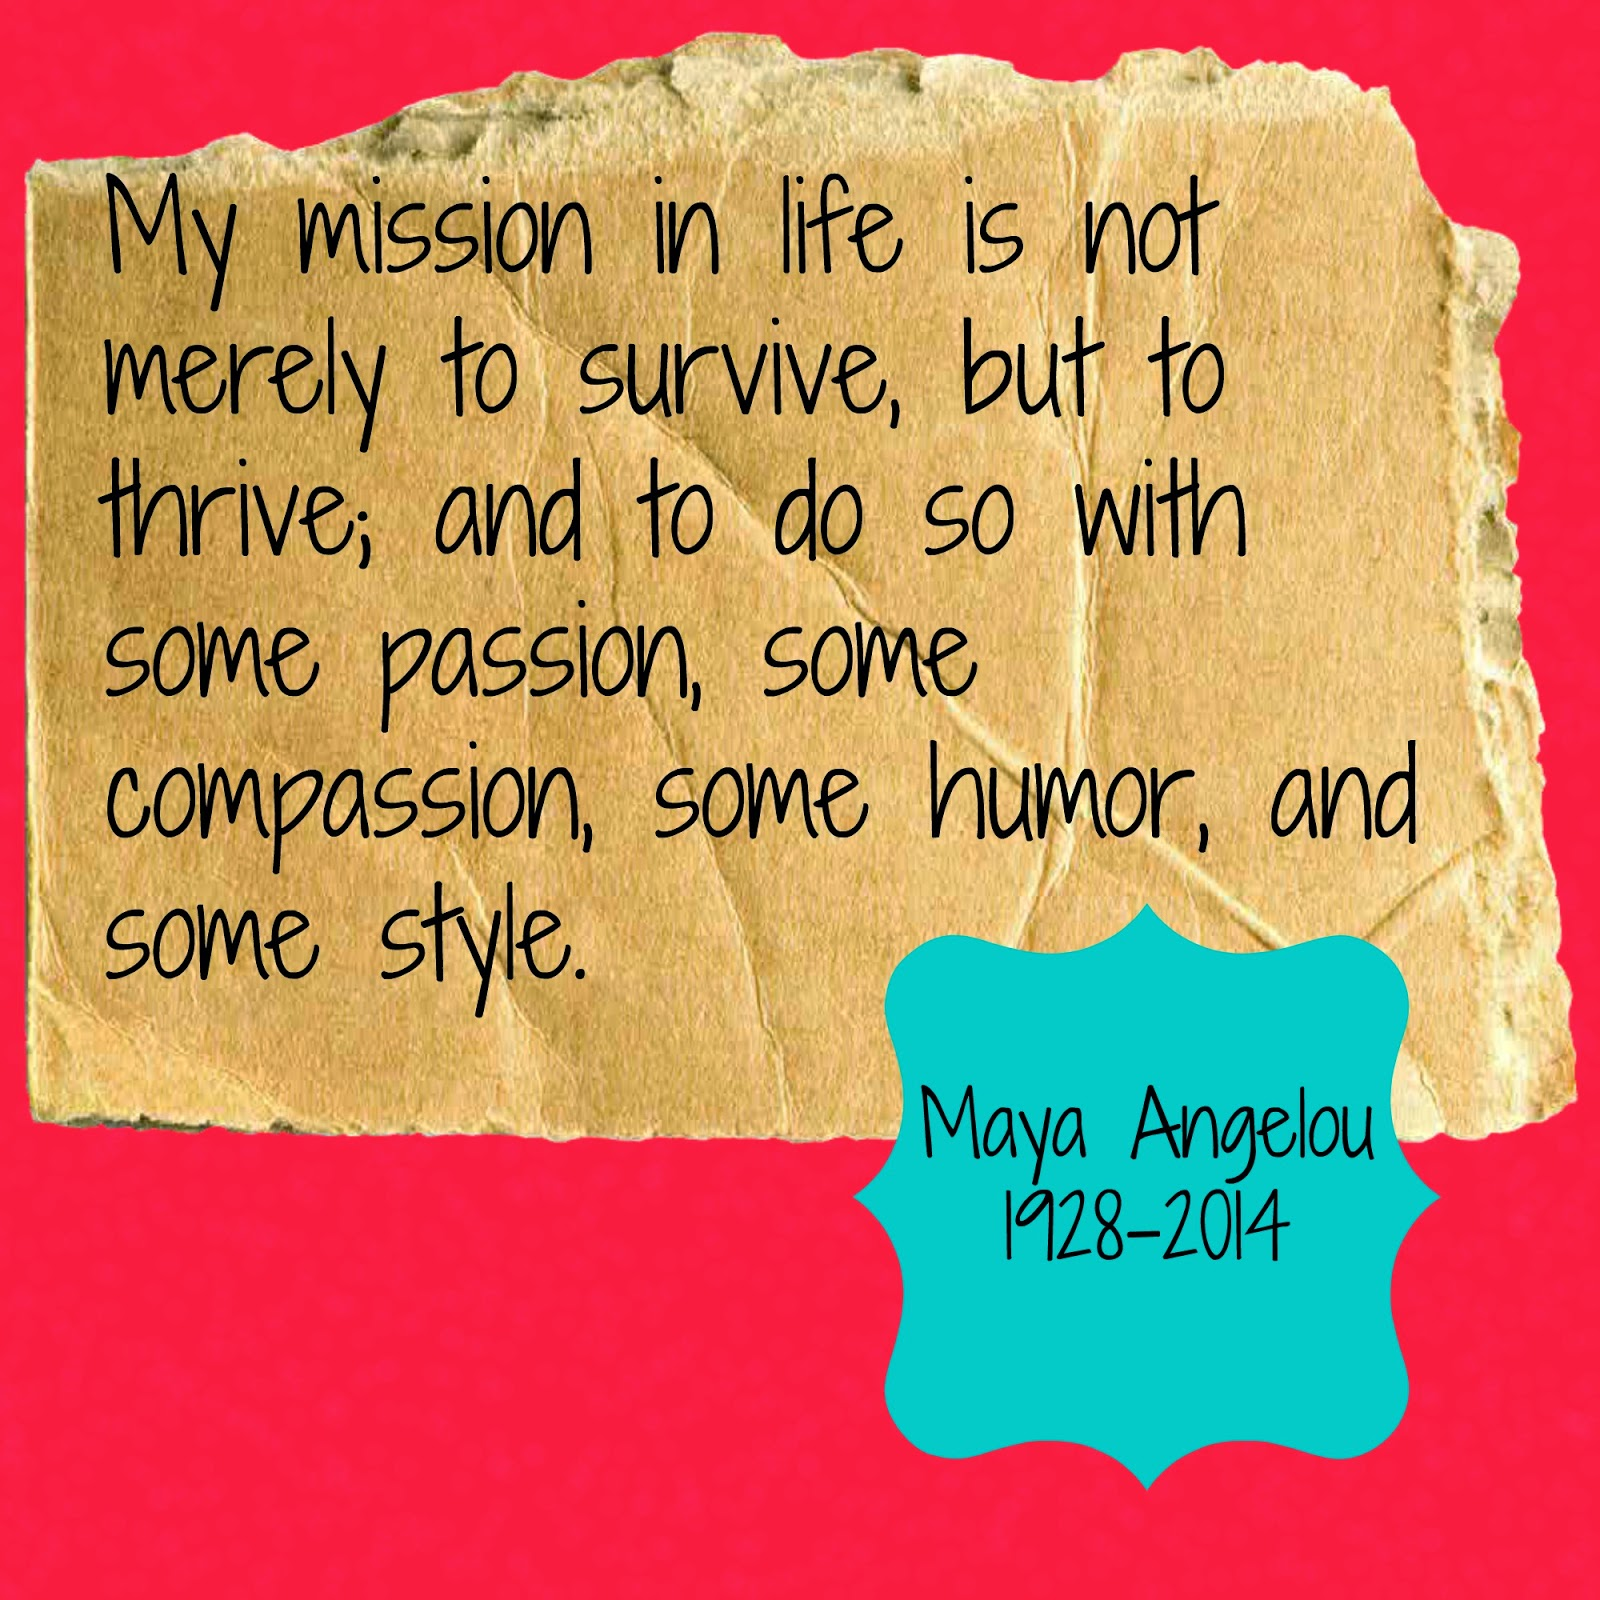 Maya Angelou Quotes About Friendship Friendship Quotes Maya Angelou Quotes On Friendship